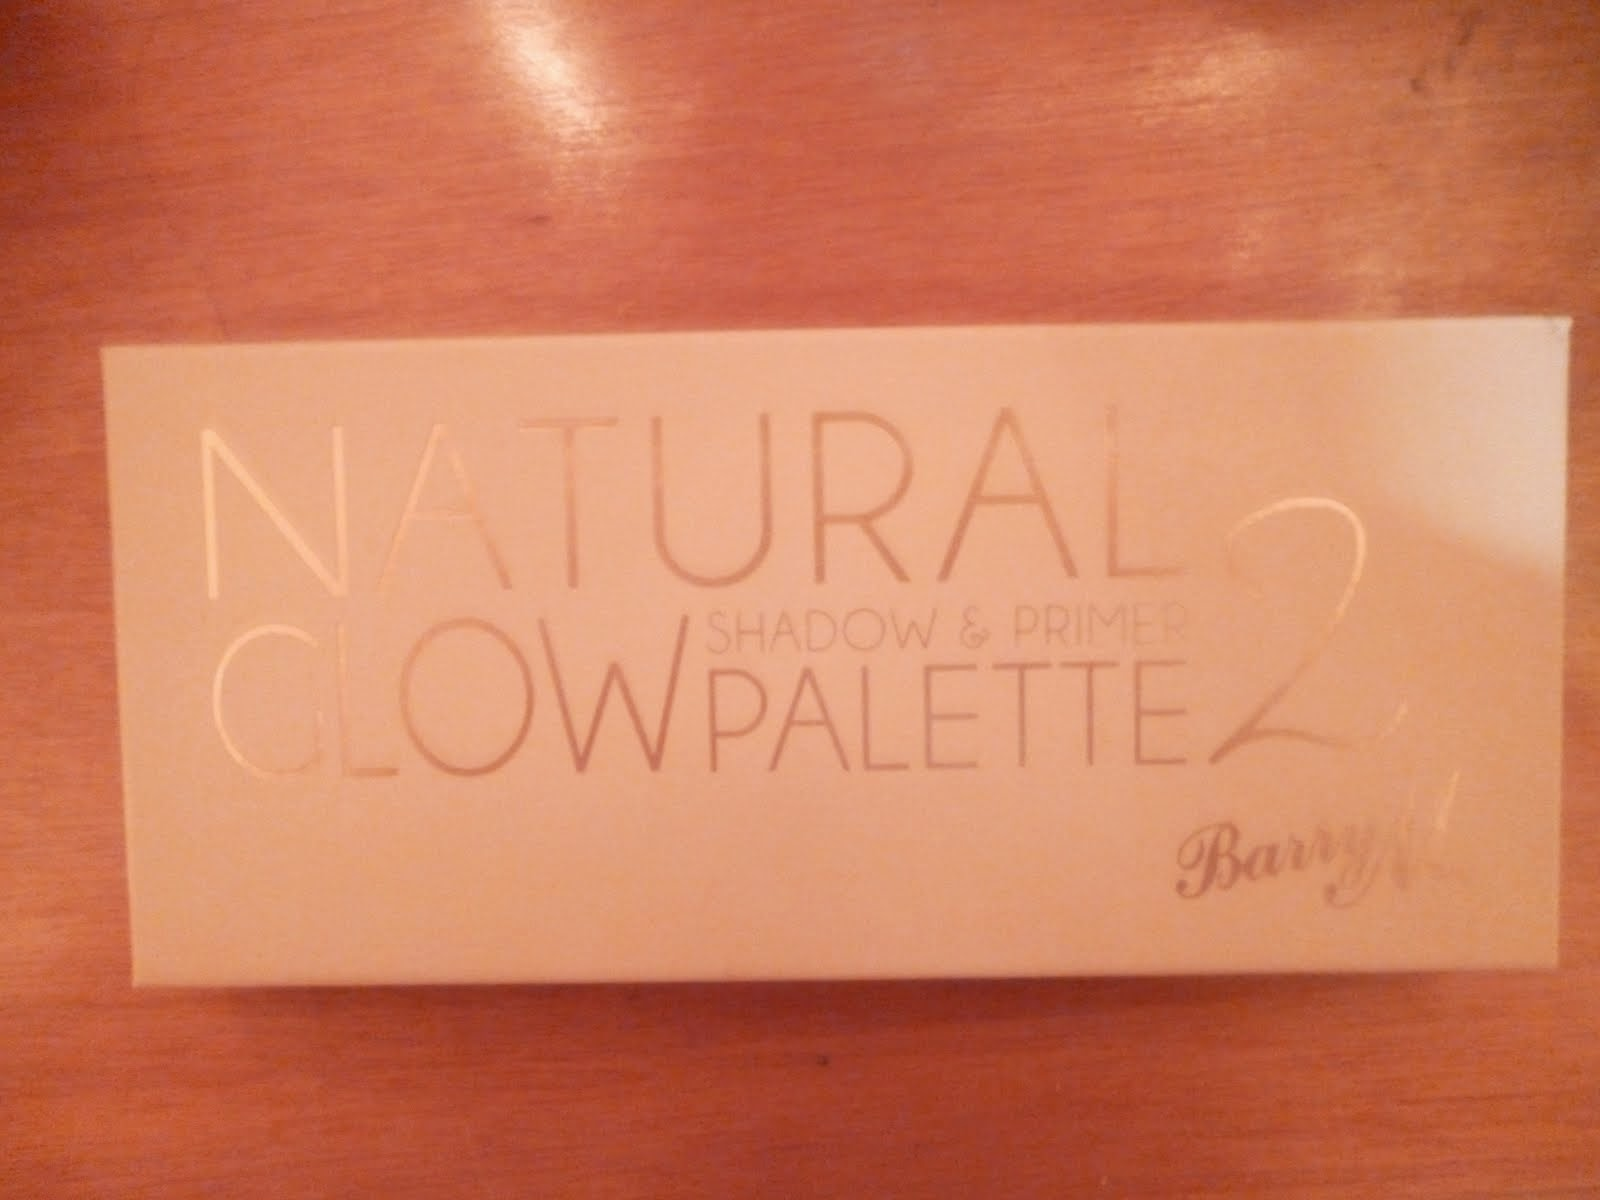 NATURAL GLOW PALETTE 2 από Barry M.